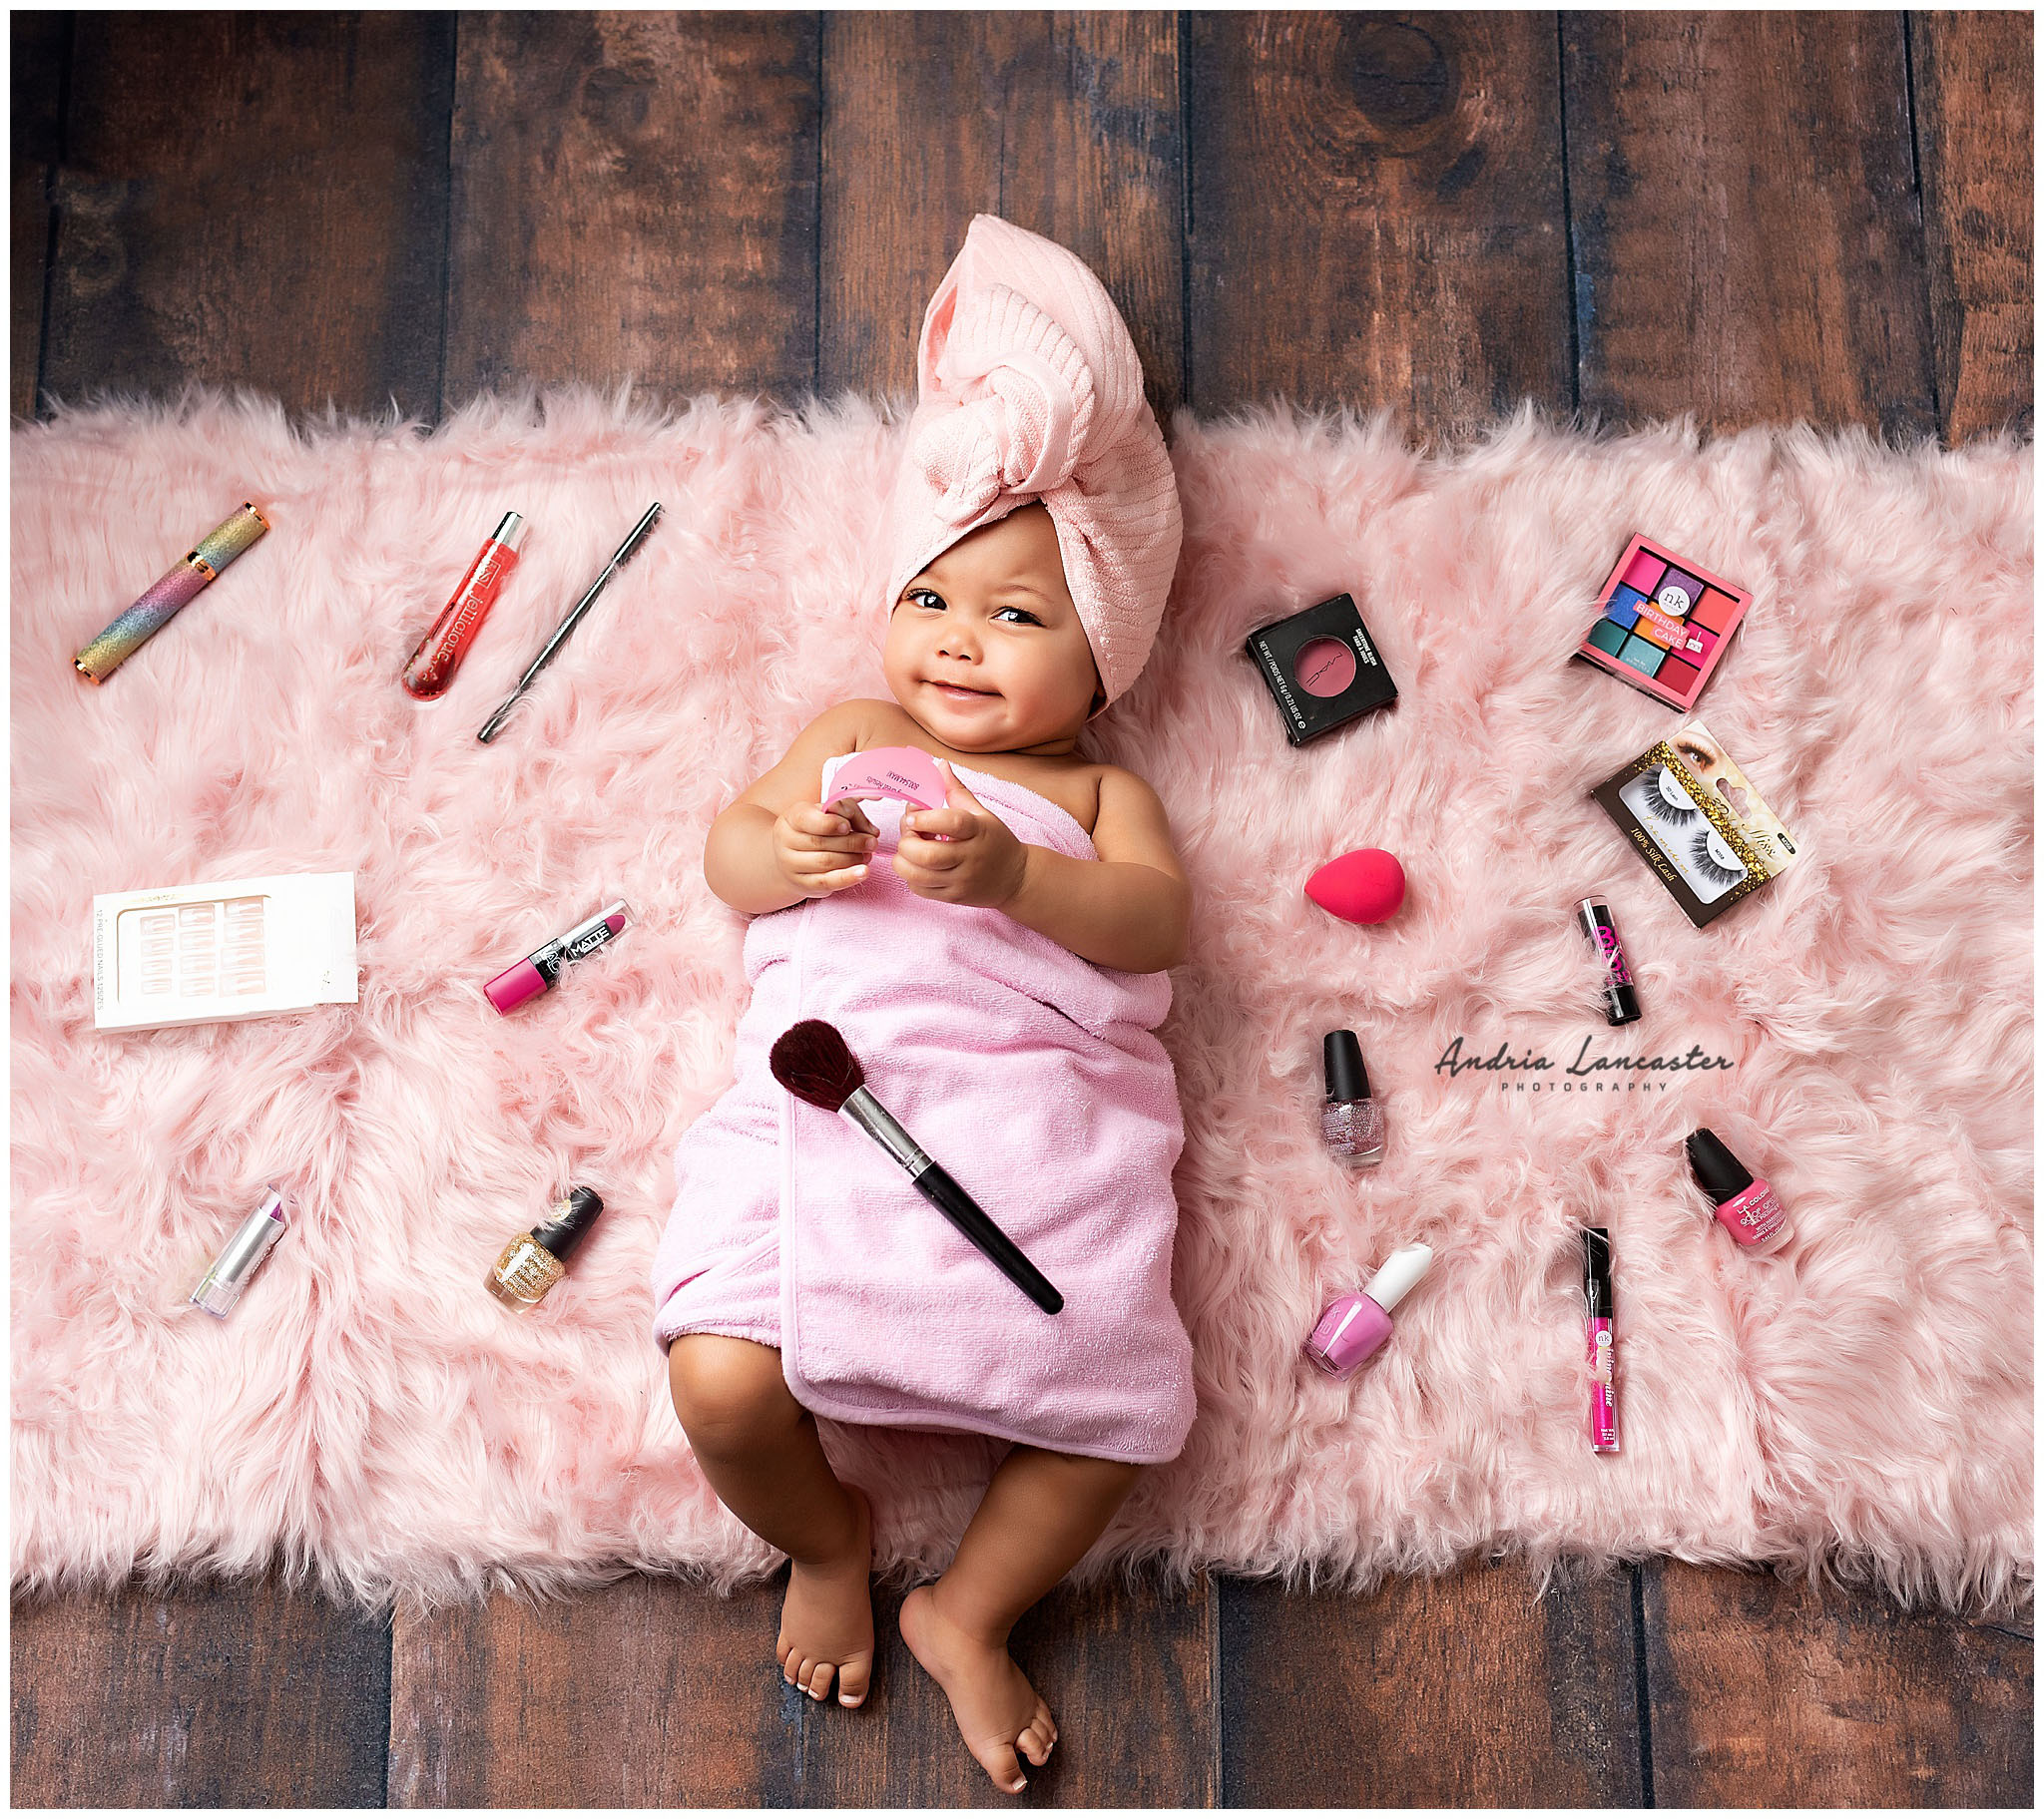 makeup setup on floor with 6 month old in the middle